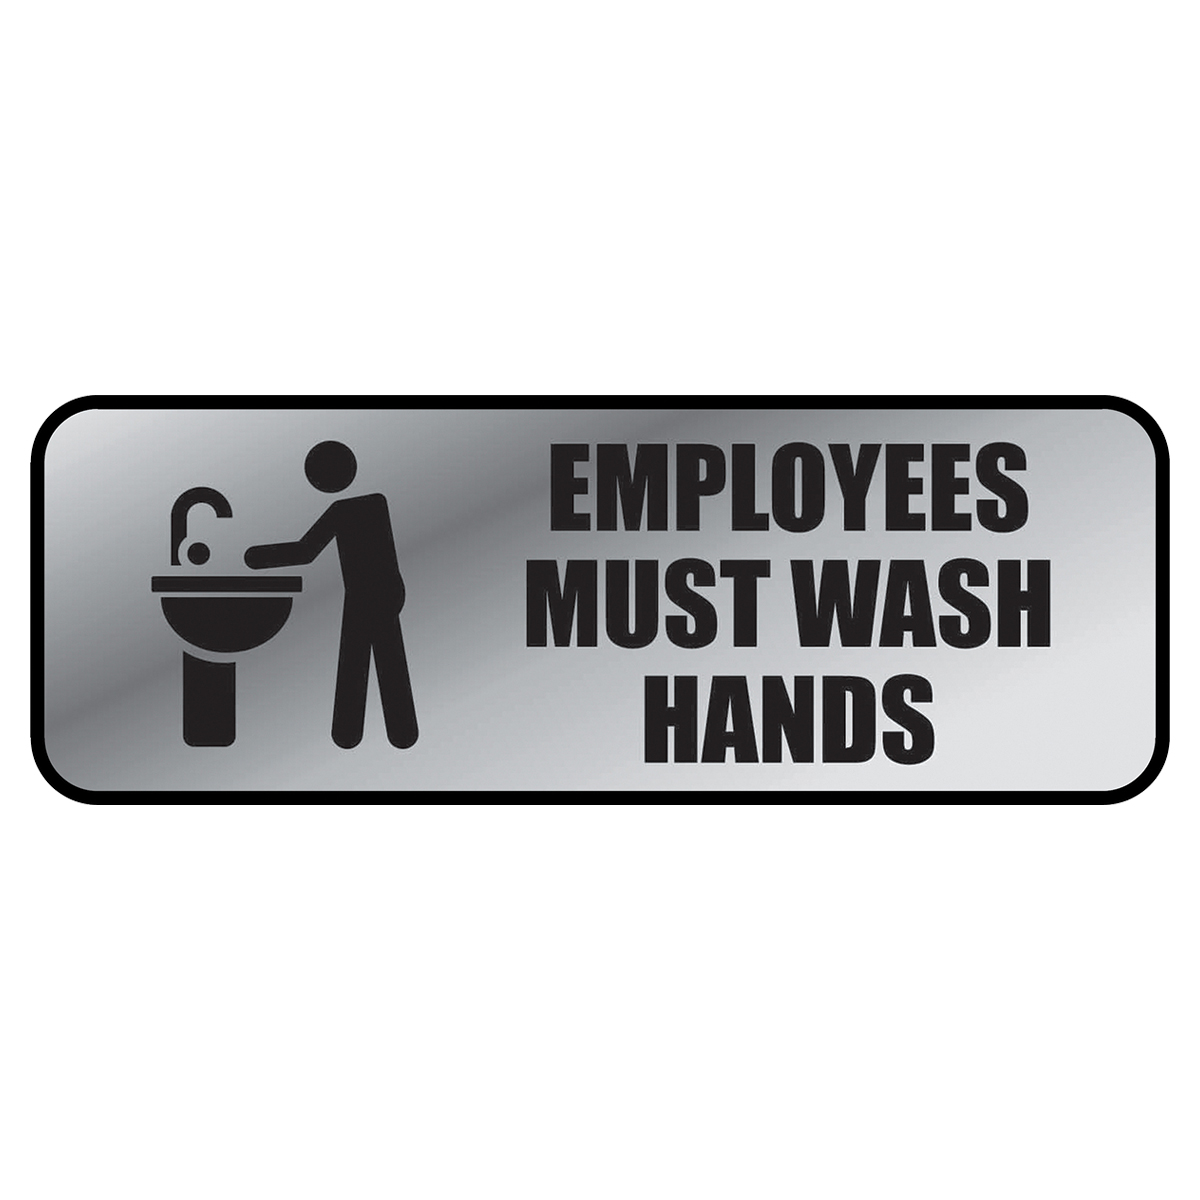 EMPLOYEES MUST WASH HANDS - Metal Sign